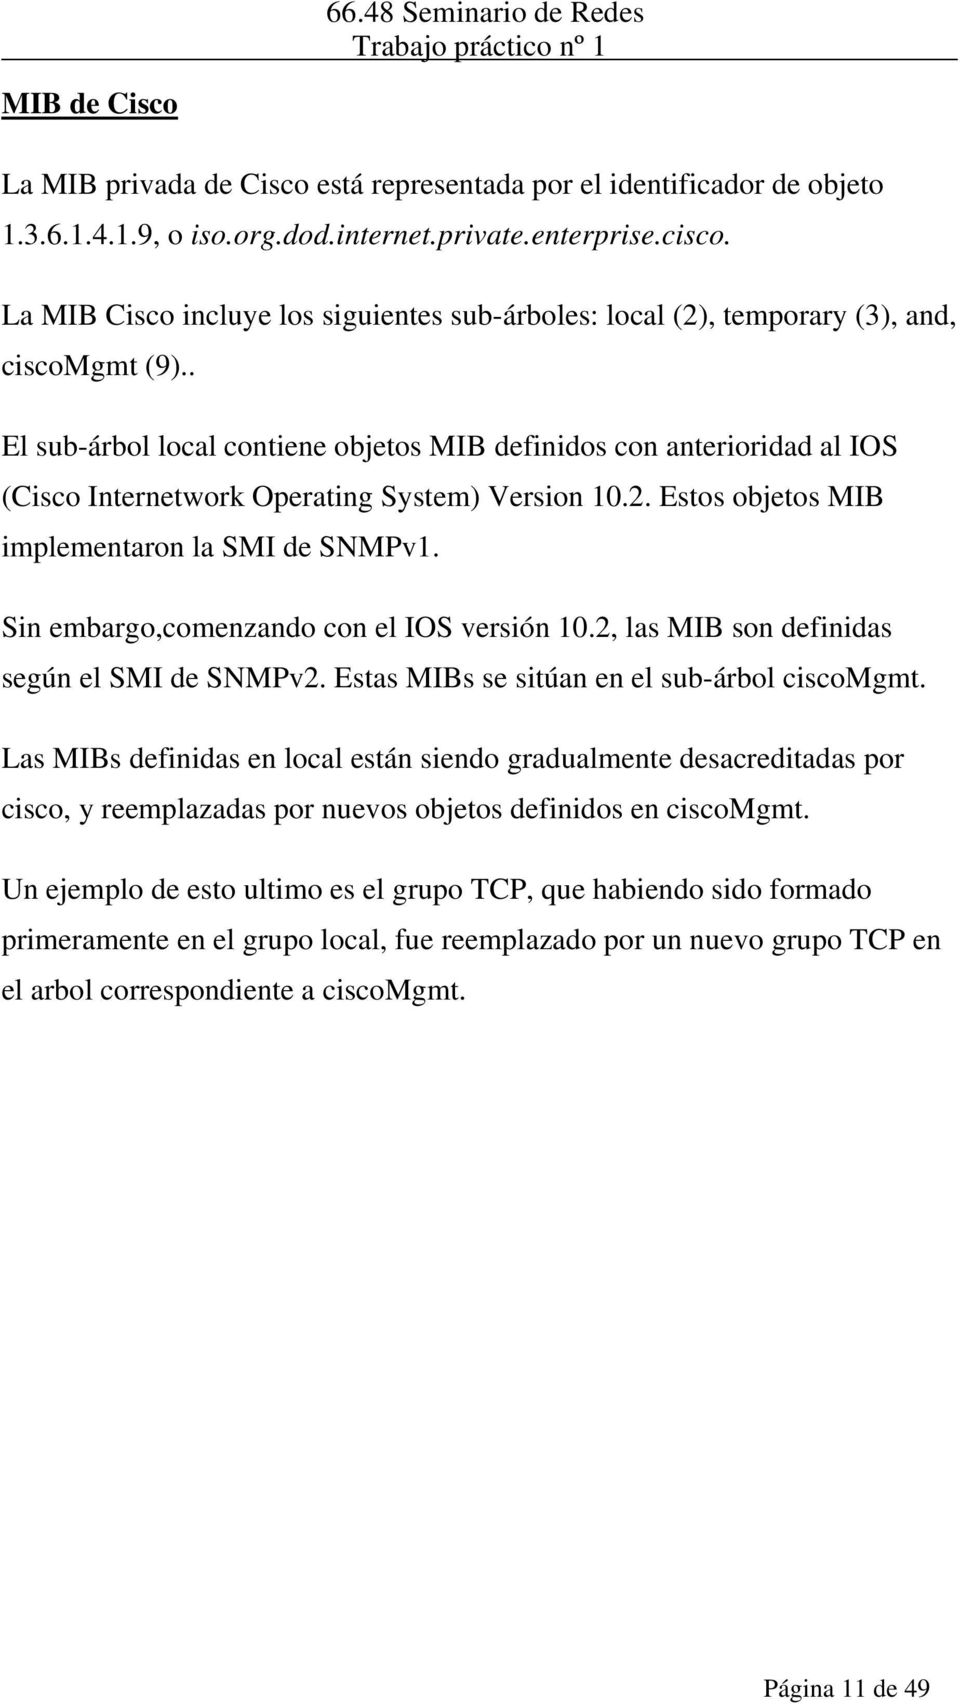 . El sub-árbol local contiene objetos MIB definidos con anterioridad al IOS (Cisco Internetwork Operating System) Version 10.2. Estos objetos MIB implementaron la SMI de SNMPv1.